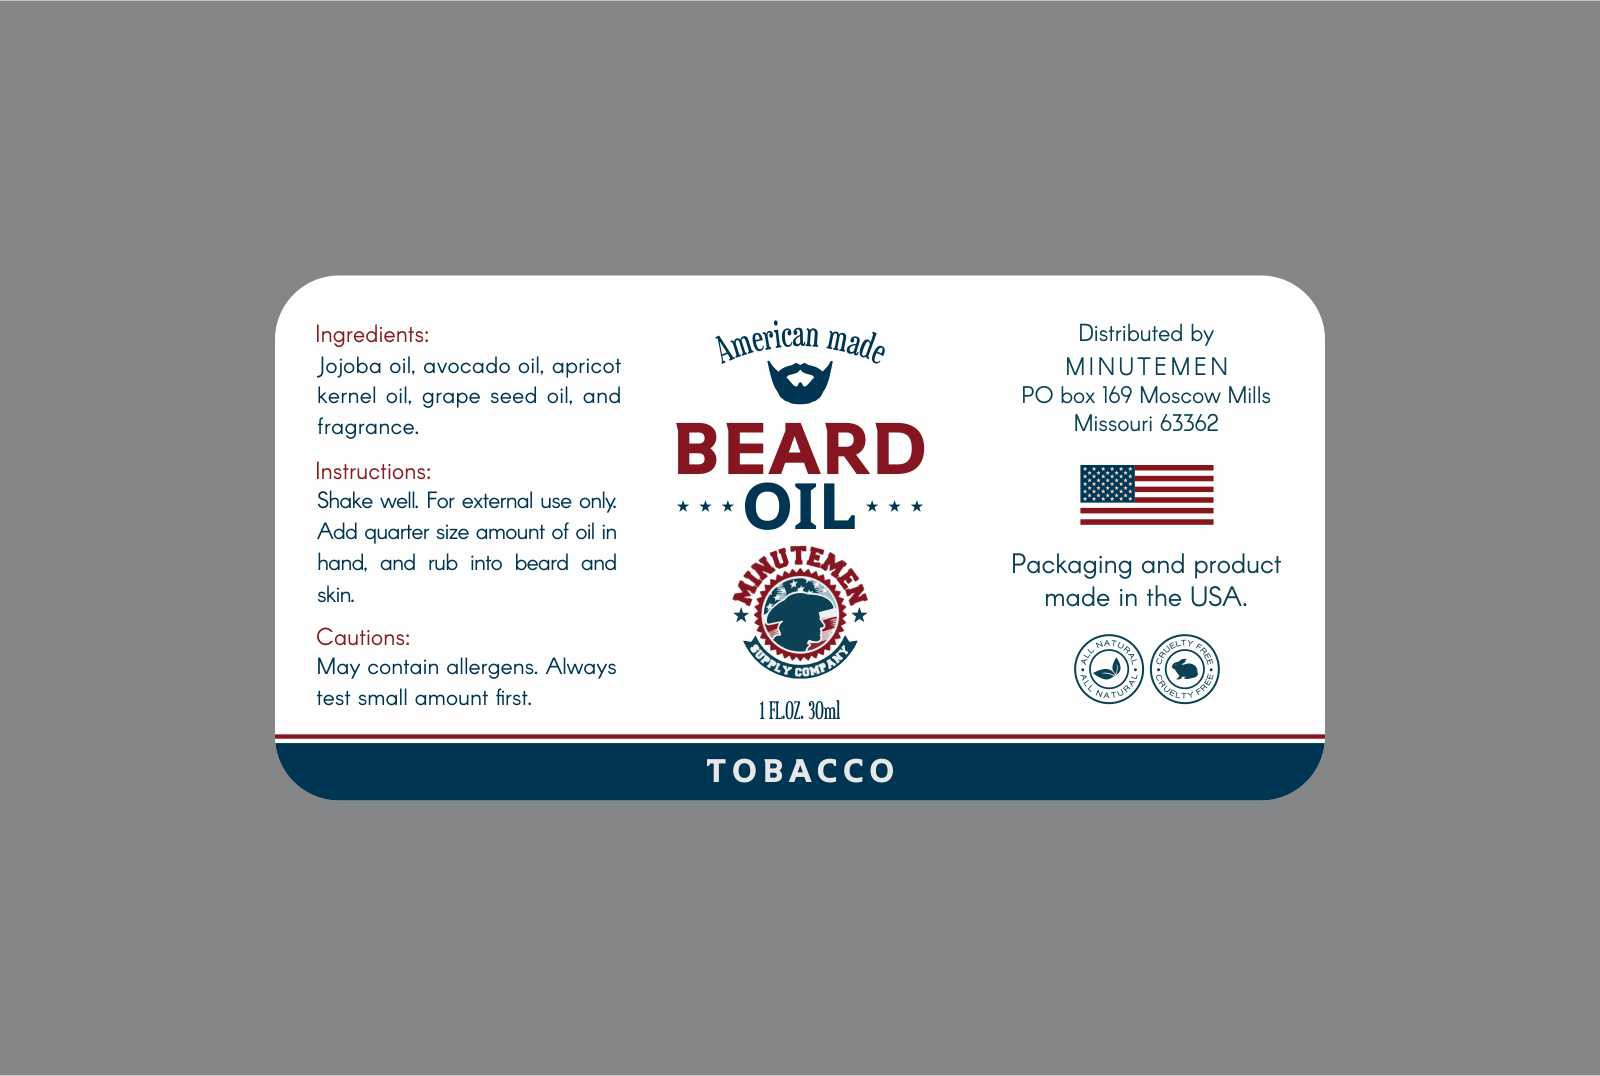 Create a product label for an American made Beard oil